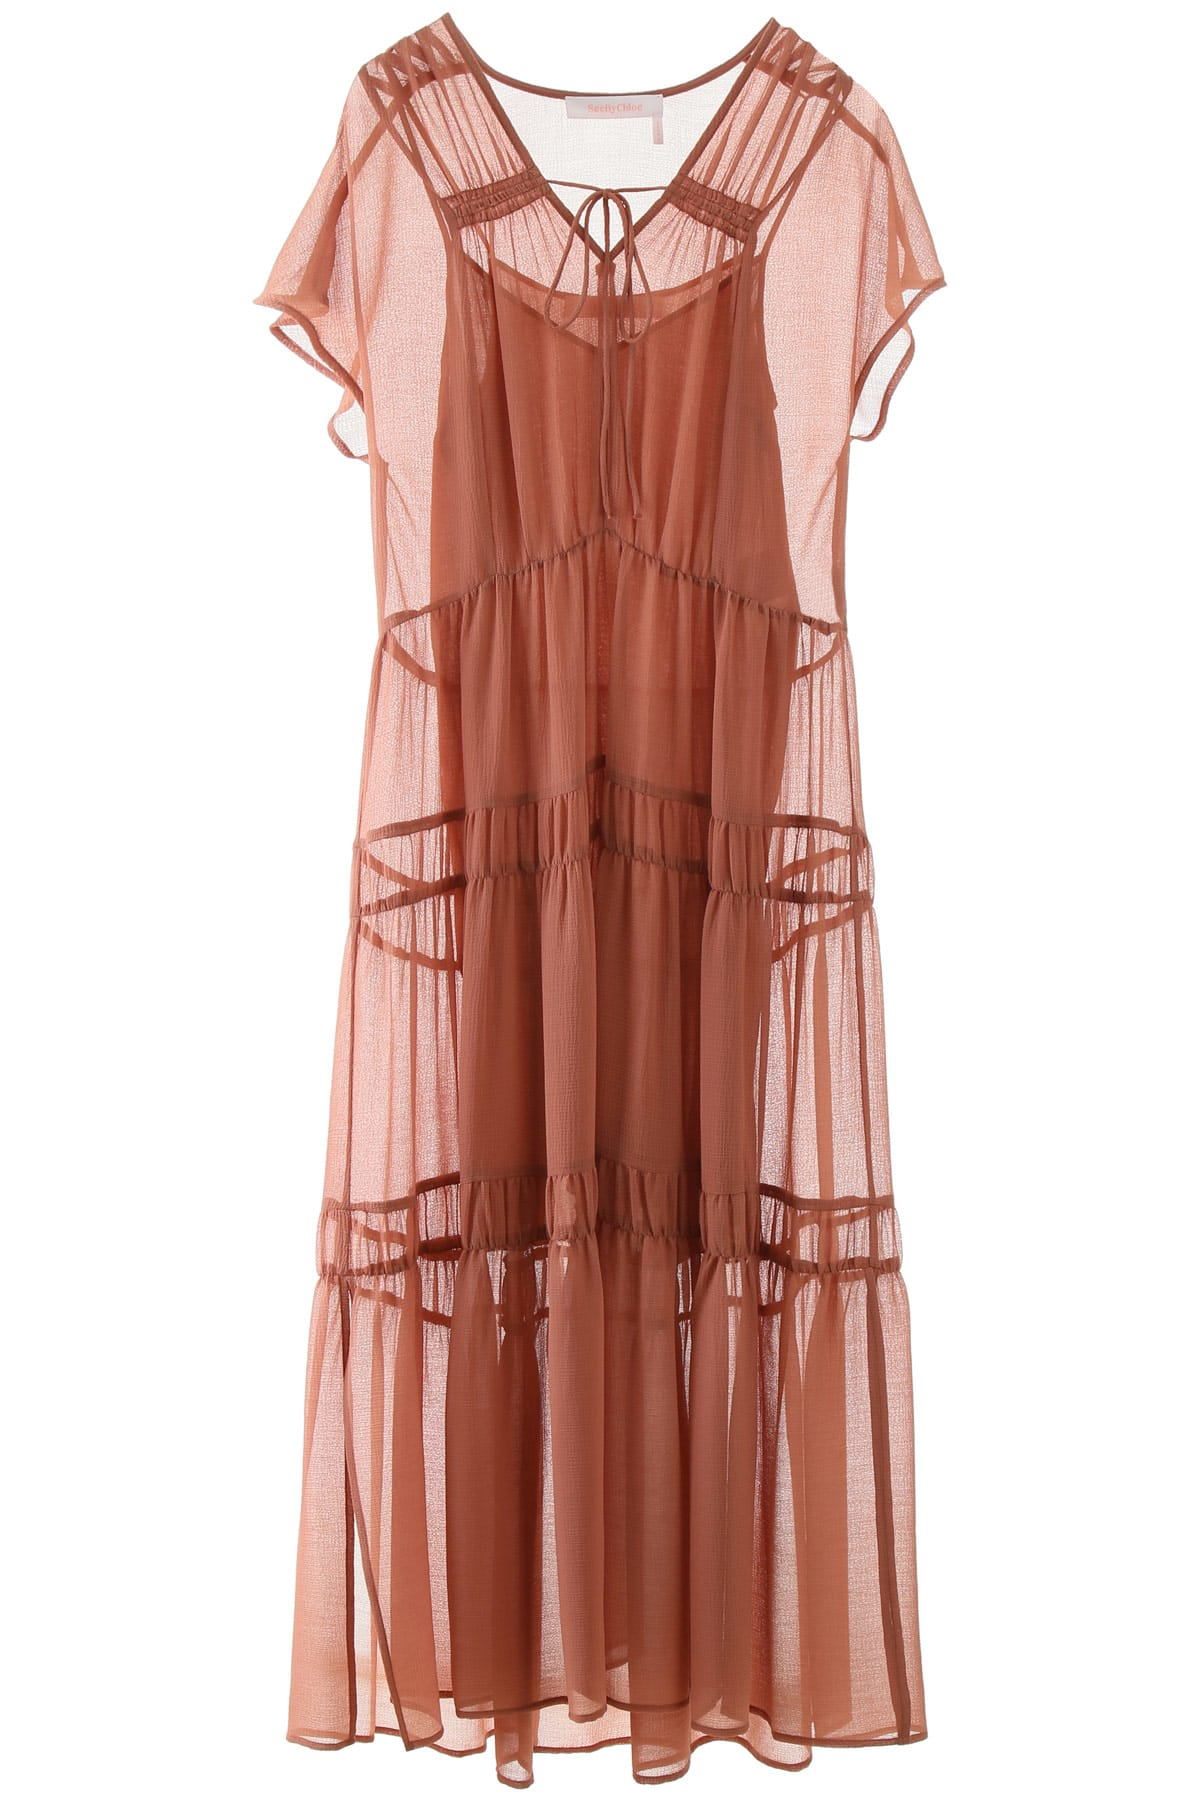 Buy See by Chloé Tiered Dress online, shop See by Chloé with free shipping